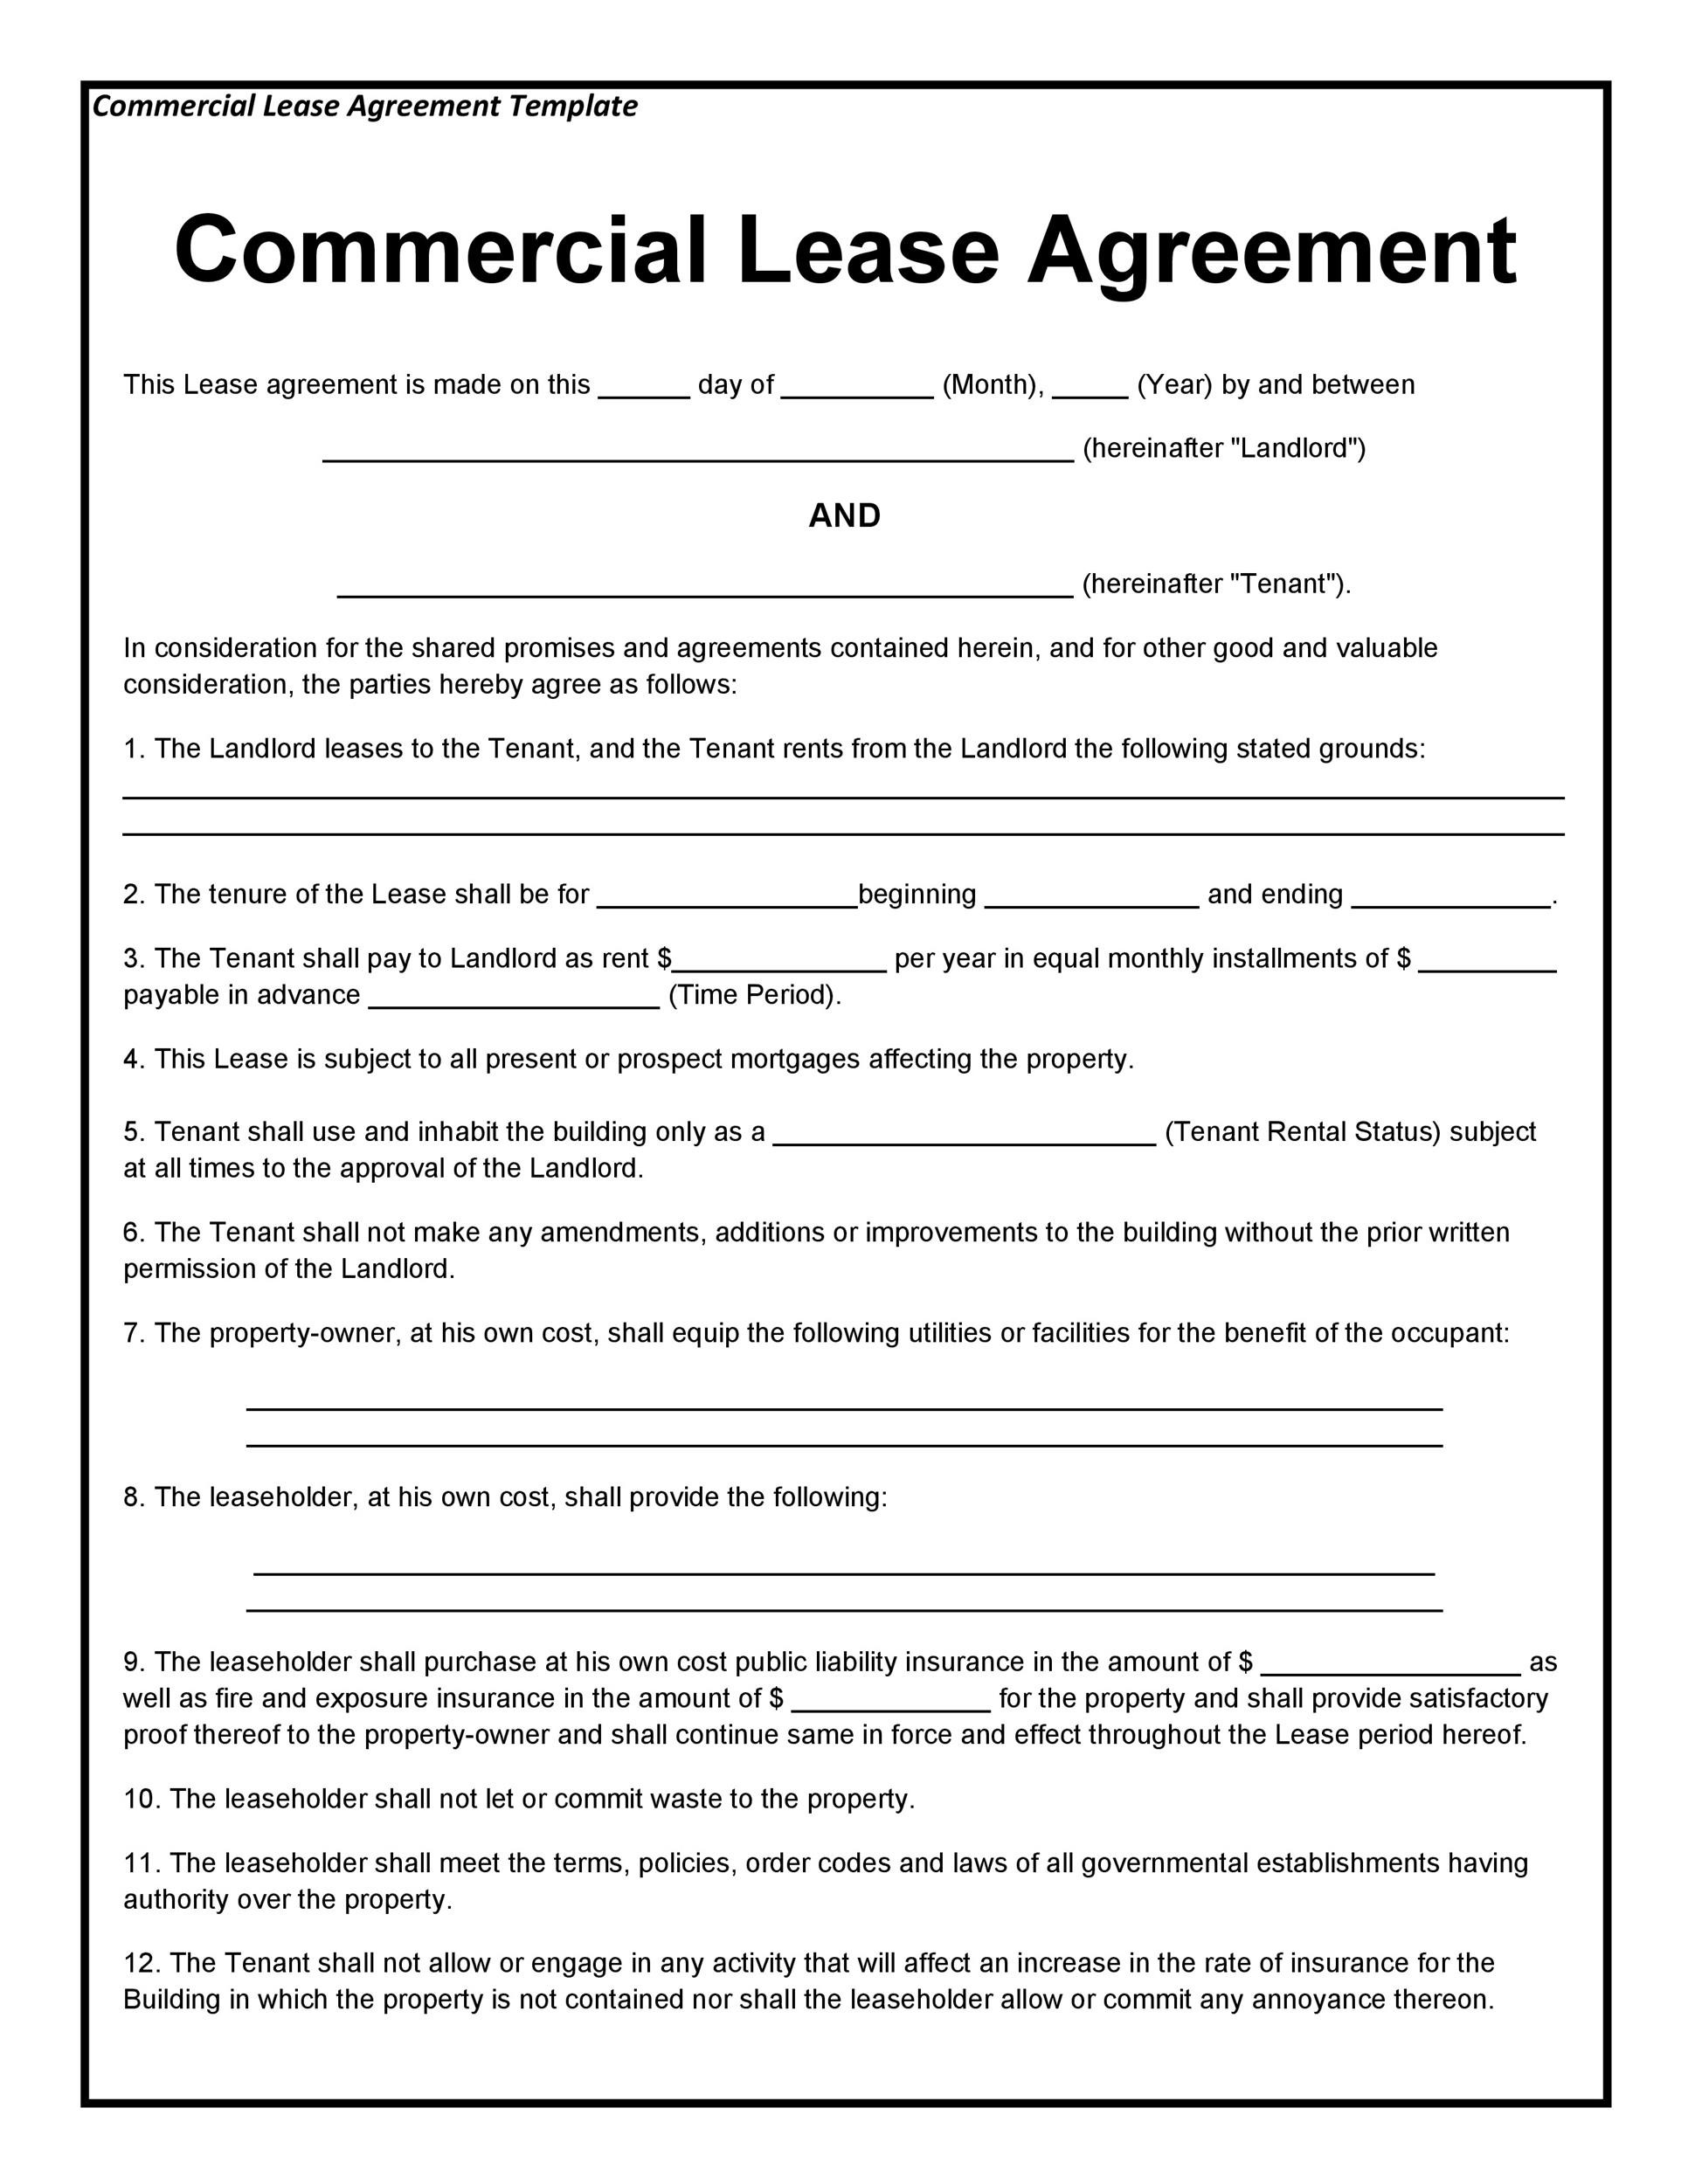 Superior Printable Commercial Lease Agreement Template 04 Throughout Lease Agreement Printable